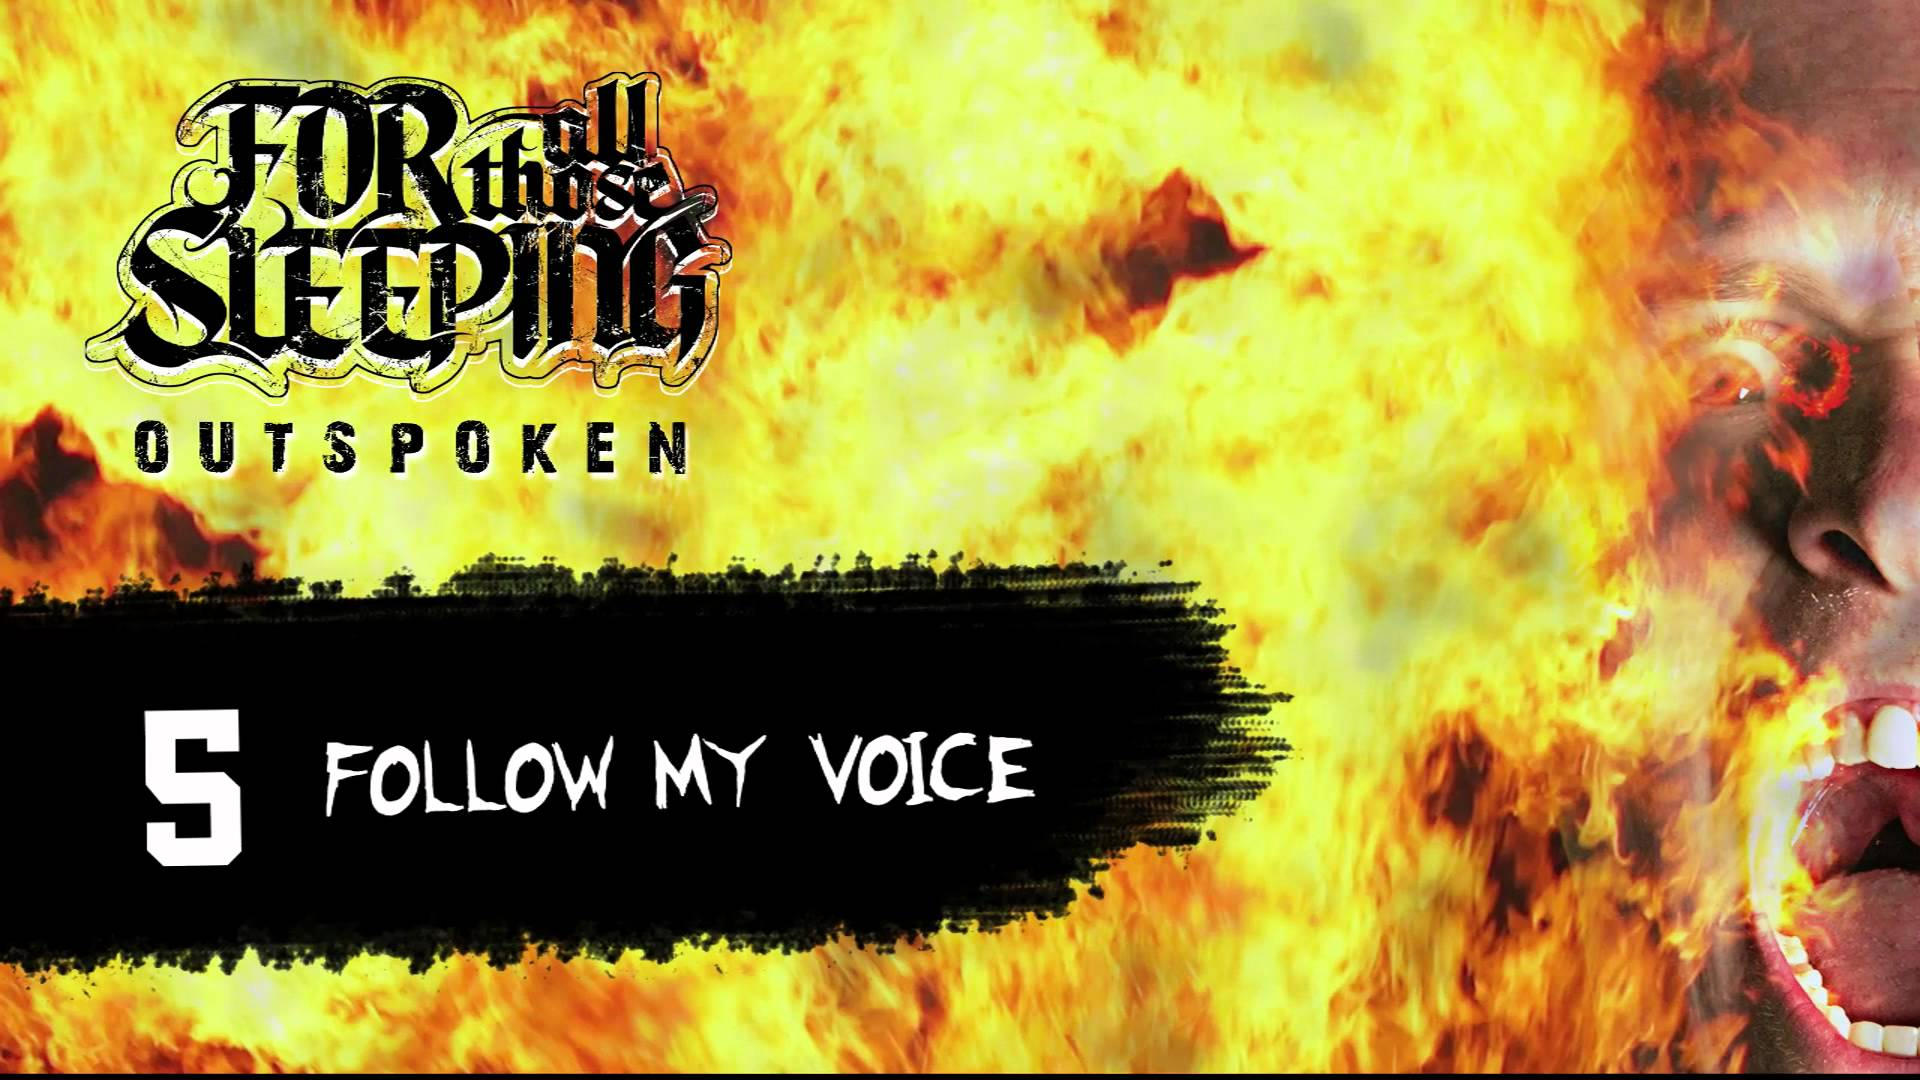 For All Those Sleeping - Follow My Voice - Track 5